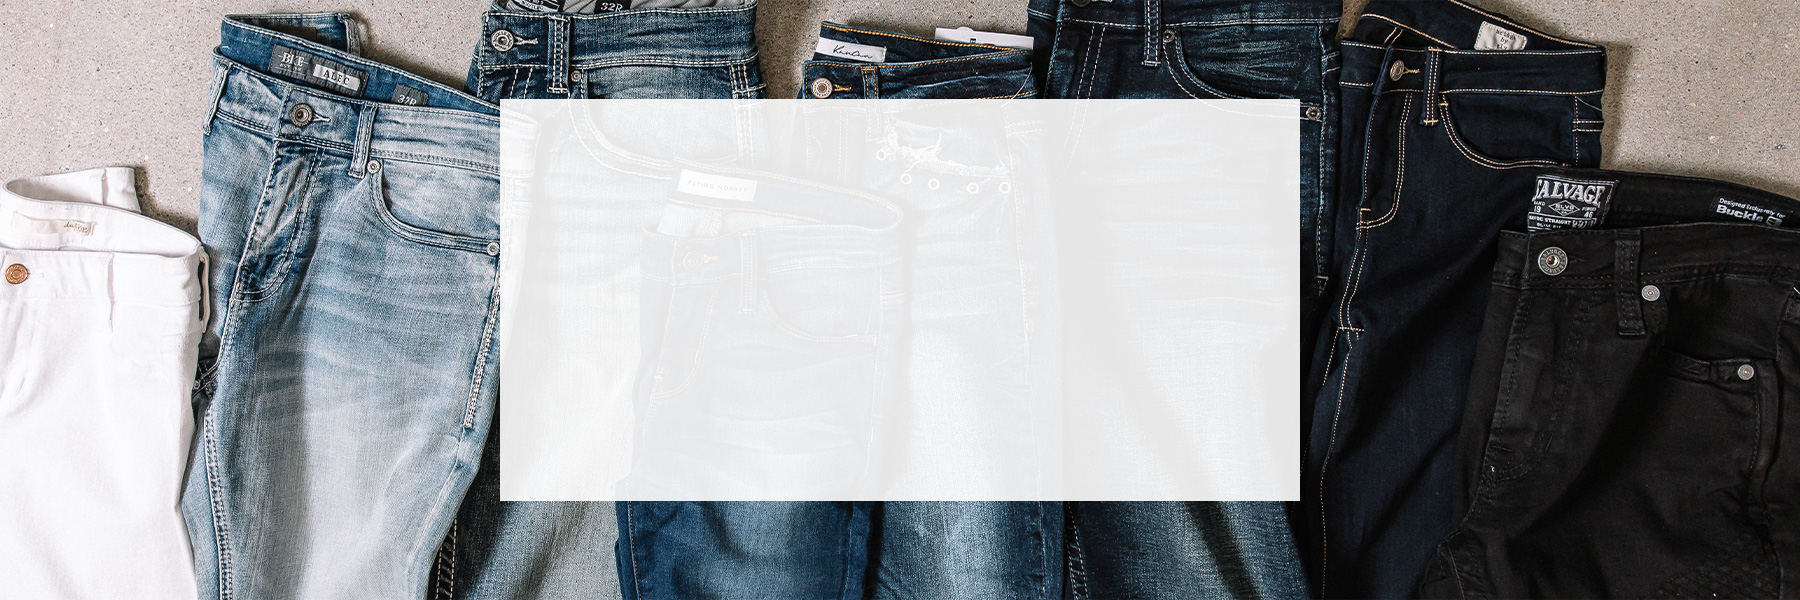 Seven pairs of denim that range from light colored wash to dark colored wash.